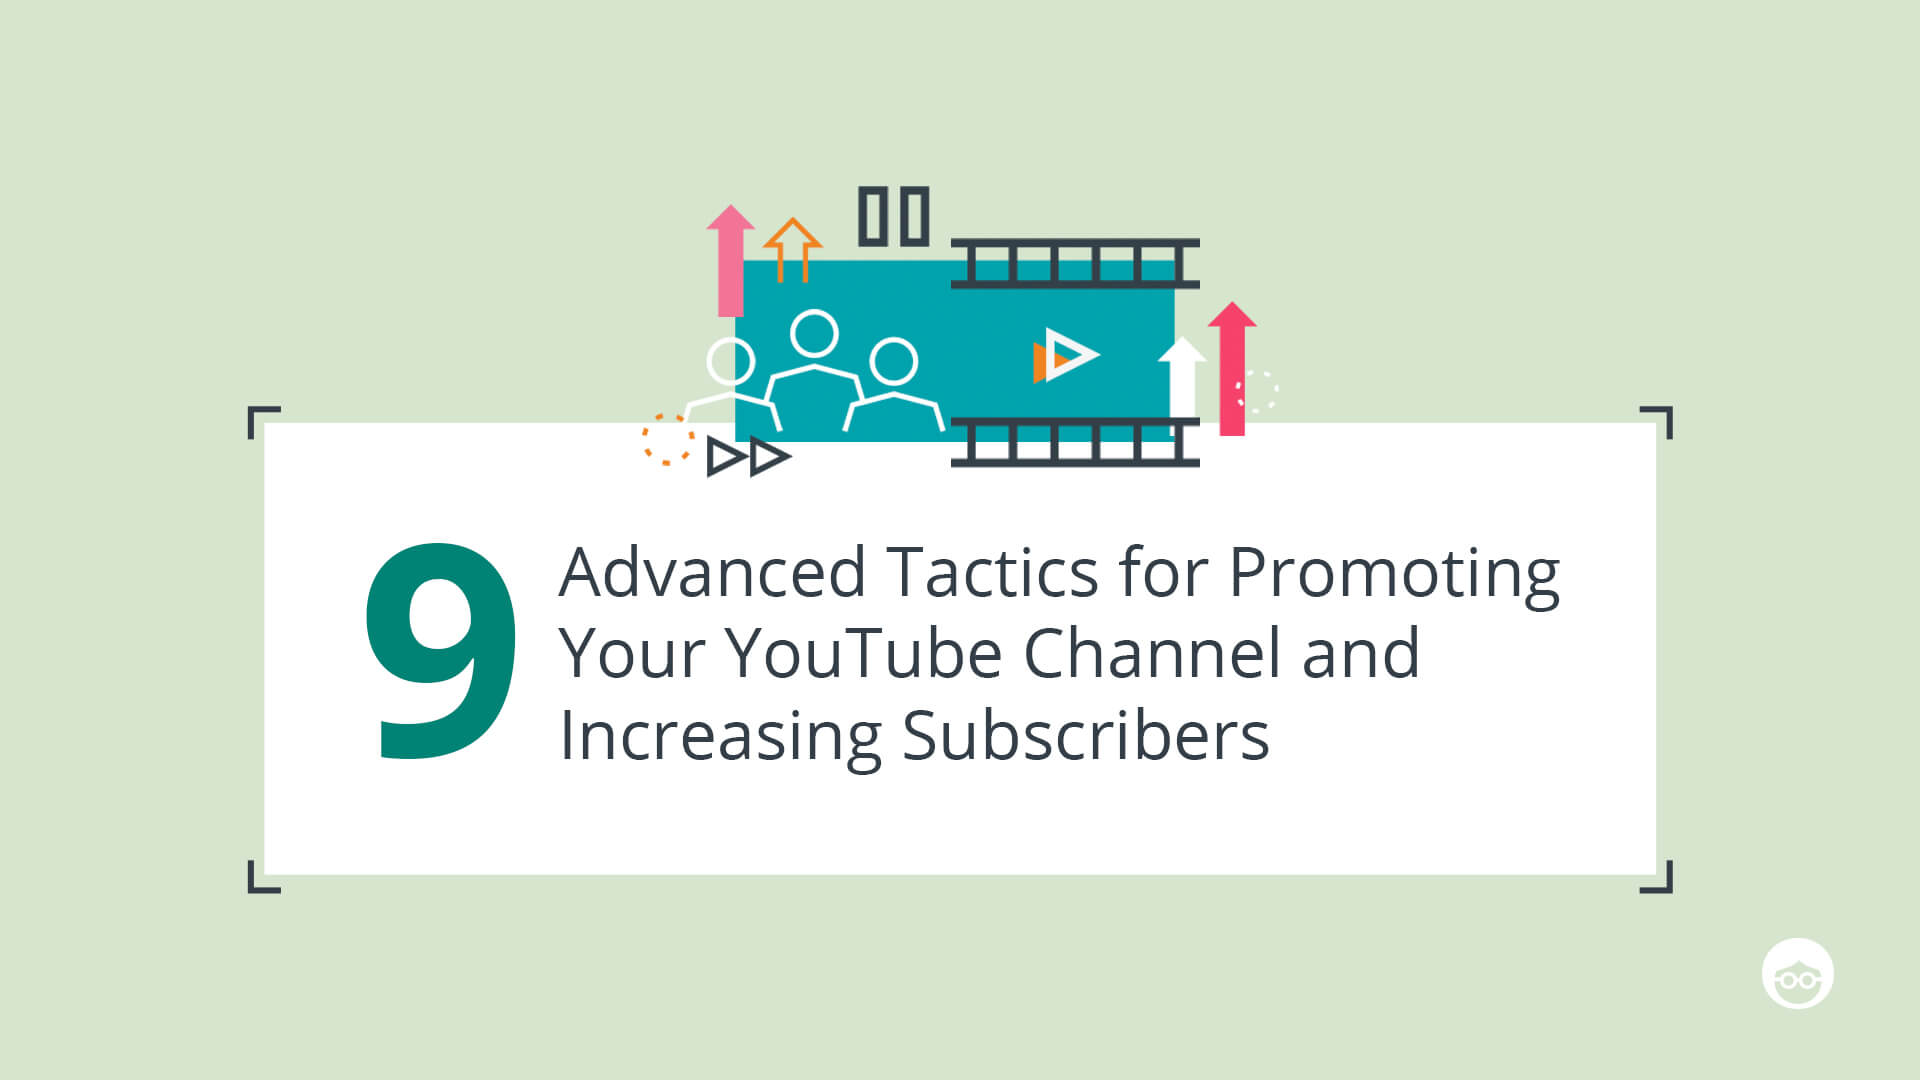 Youtube promotion - How to promote Youtube Channel | Outbrain